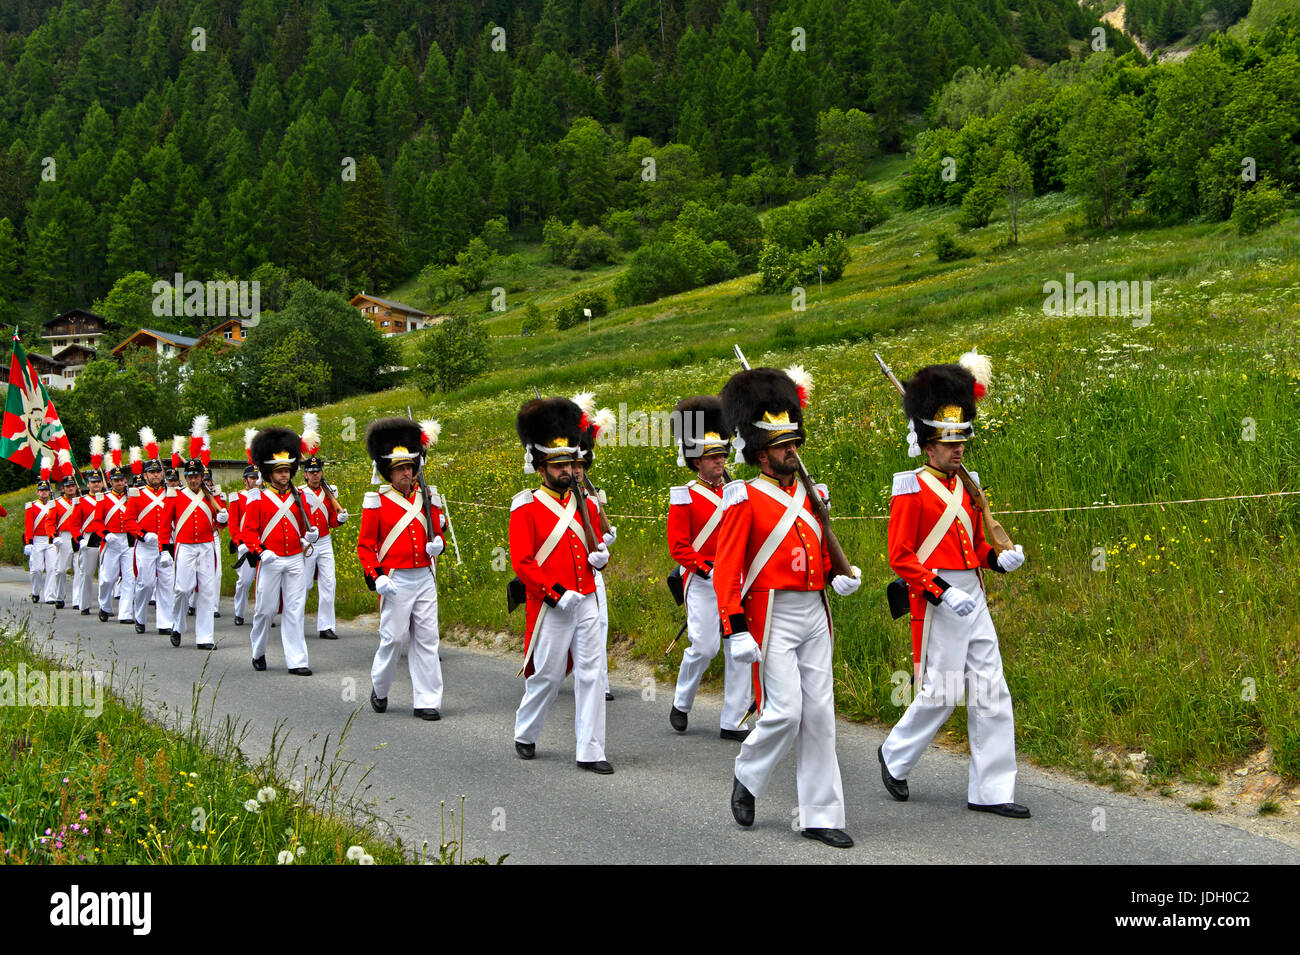 Grenadiers of Our Lord at the Corpus Christi procession, Wiler, Lötschental, Valais, Switzerland - Stock Image